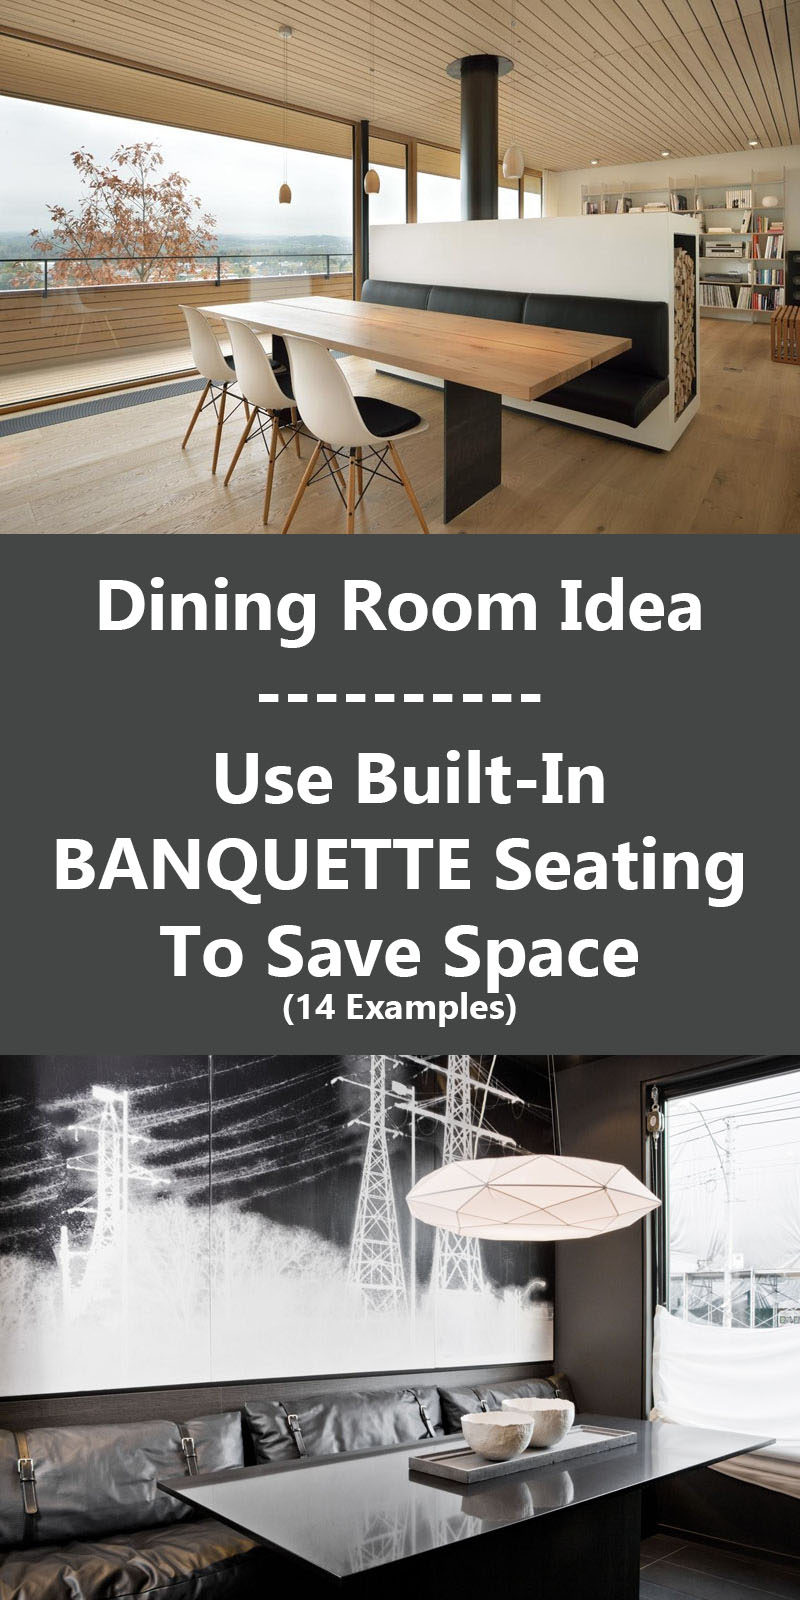 Dining Room Design Ideas - Use Built-In Banquette Seating To Save Space